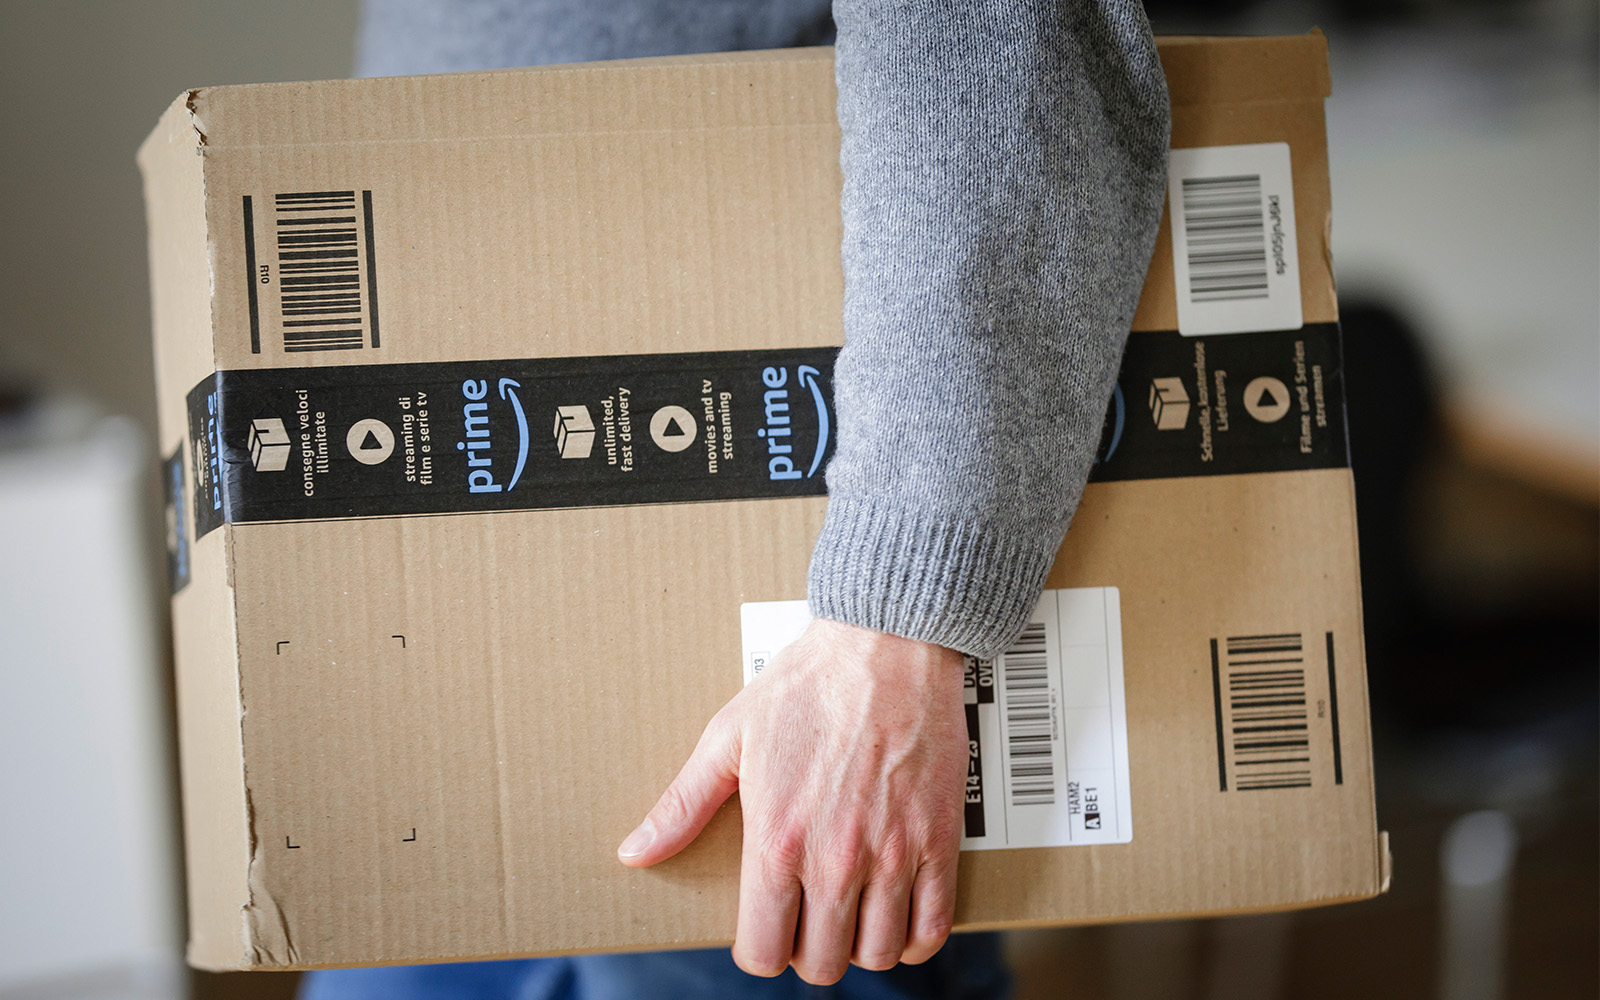 Amazon Prime Day 2018: When It Starts and How to Score the Best Deals